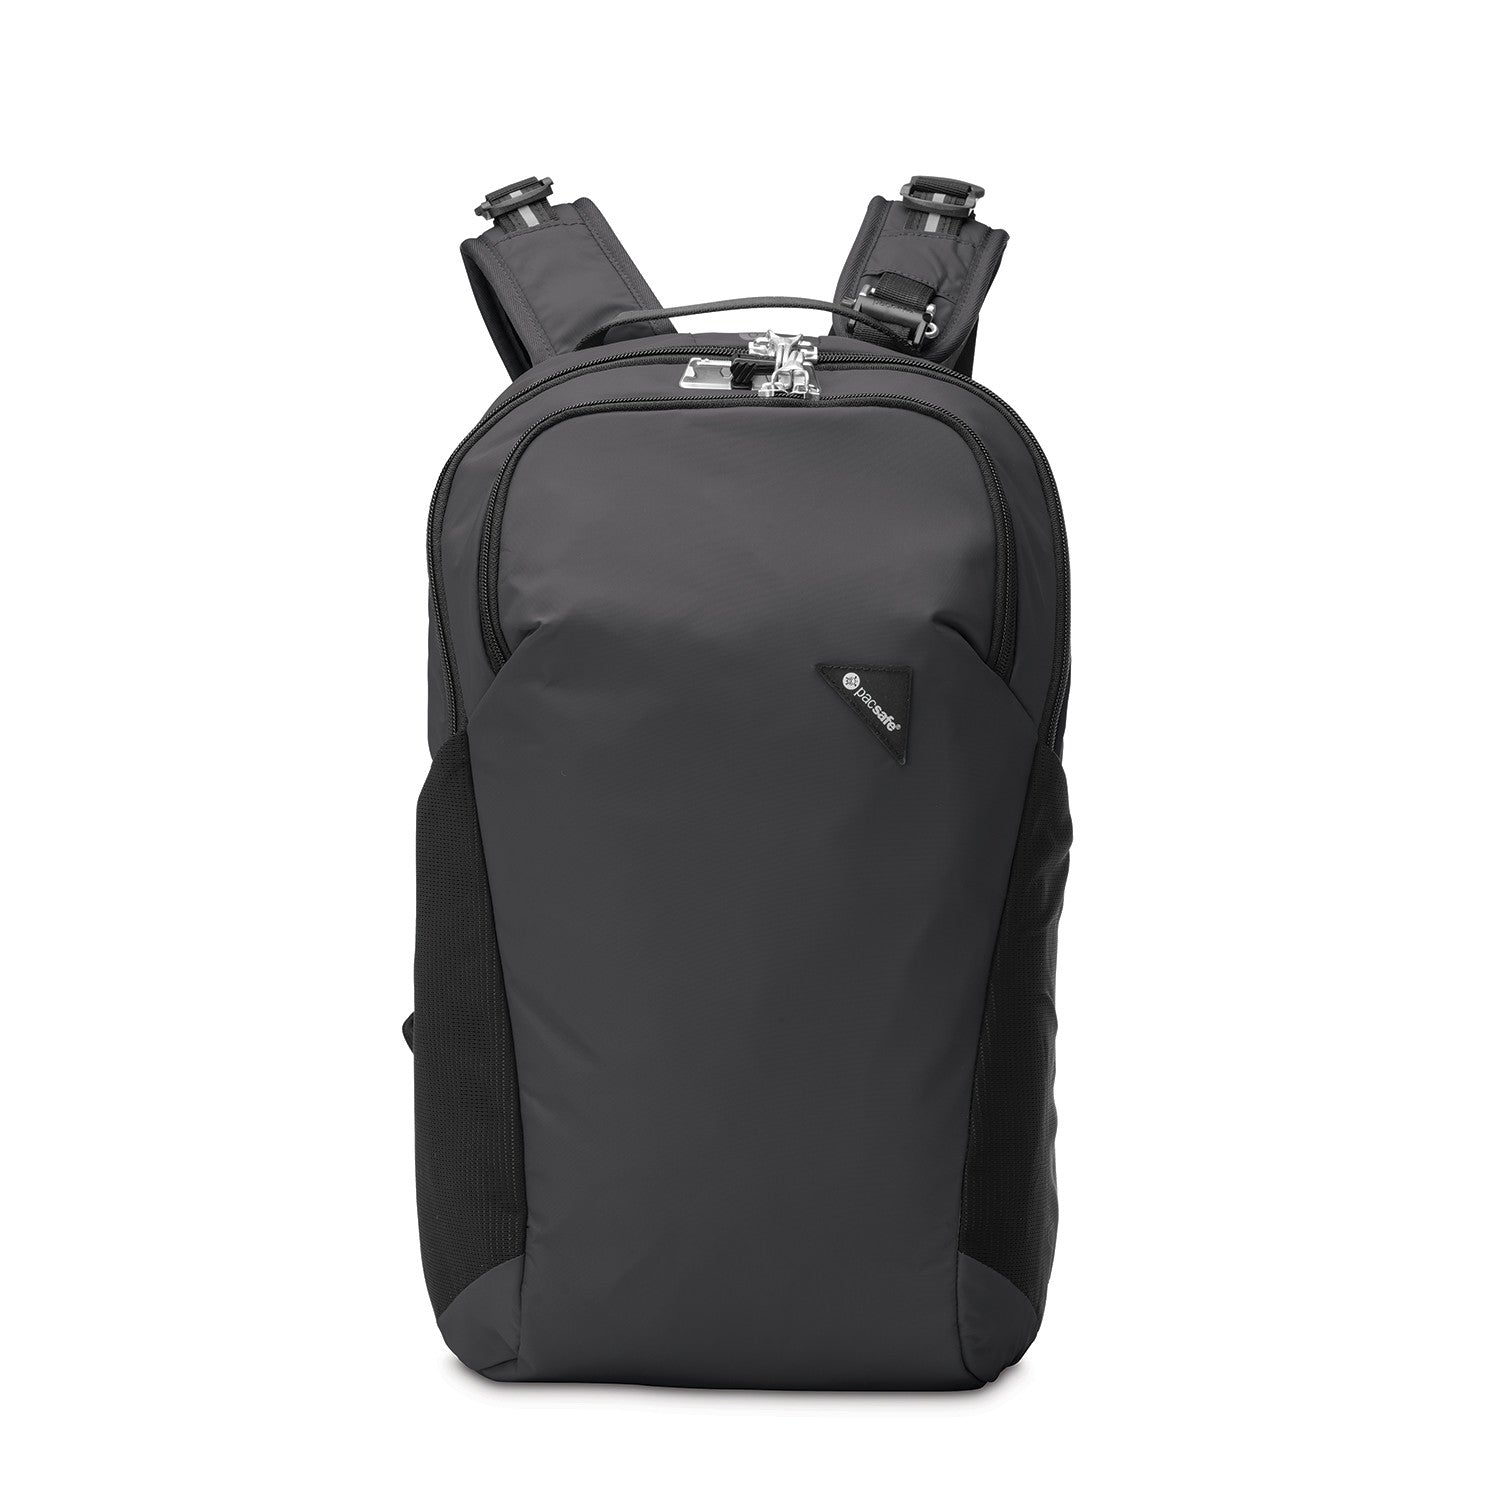 Pacsafe-Vibe 20 Anti-Theft 20L Backpack-RFID Bag-Black-Gearaholic.com.sg